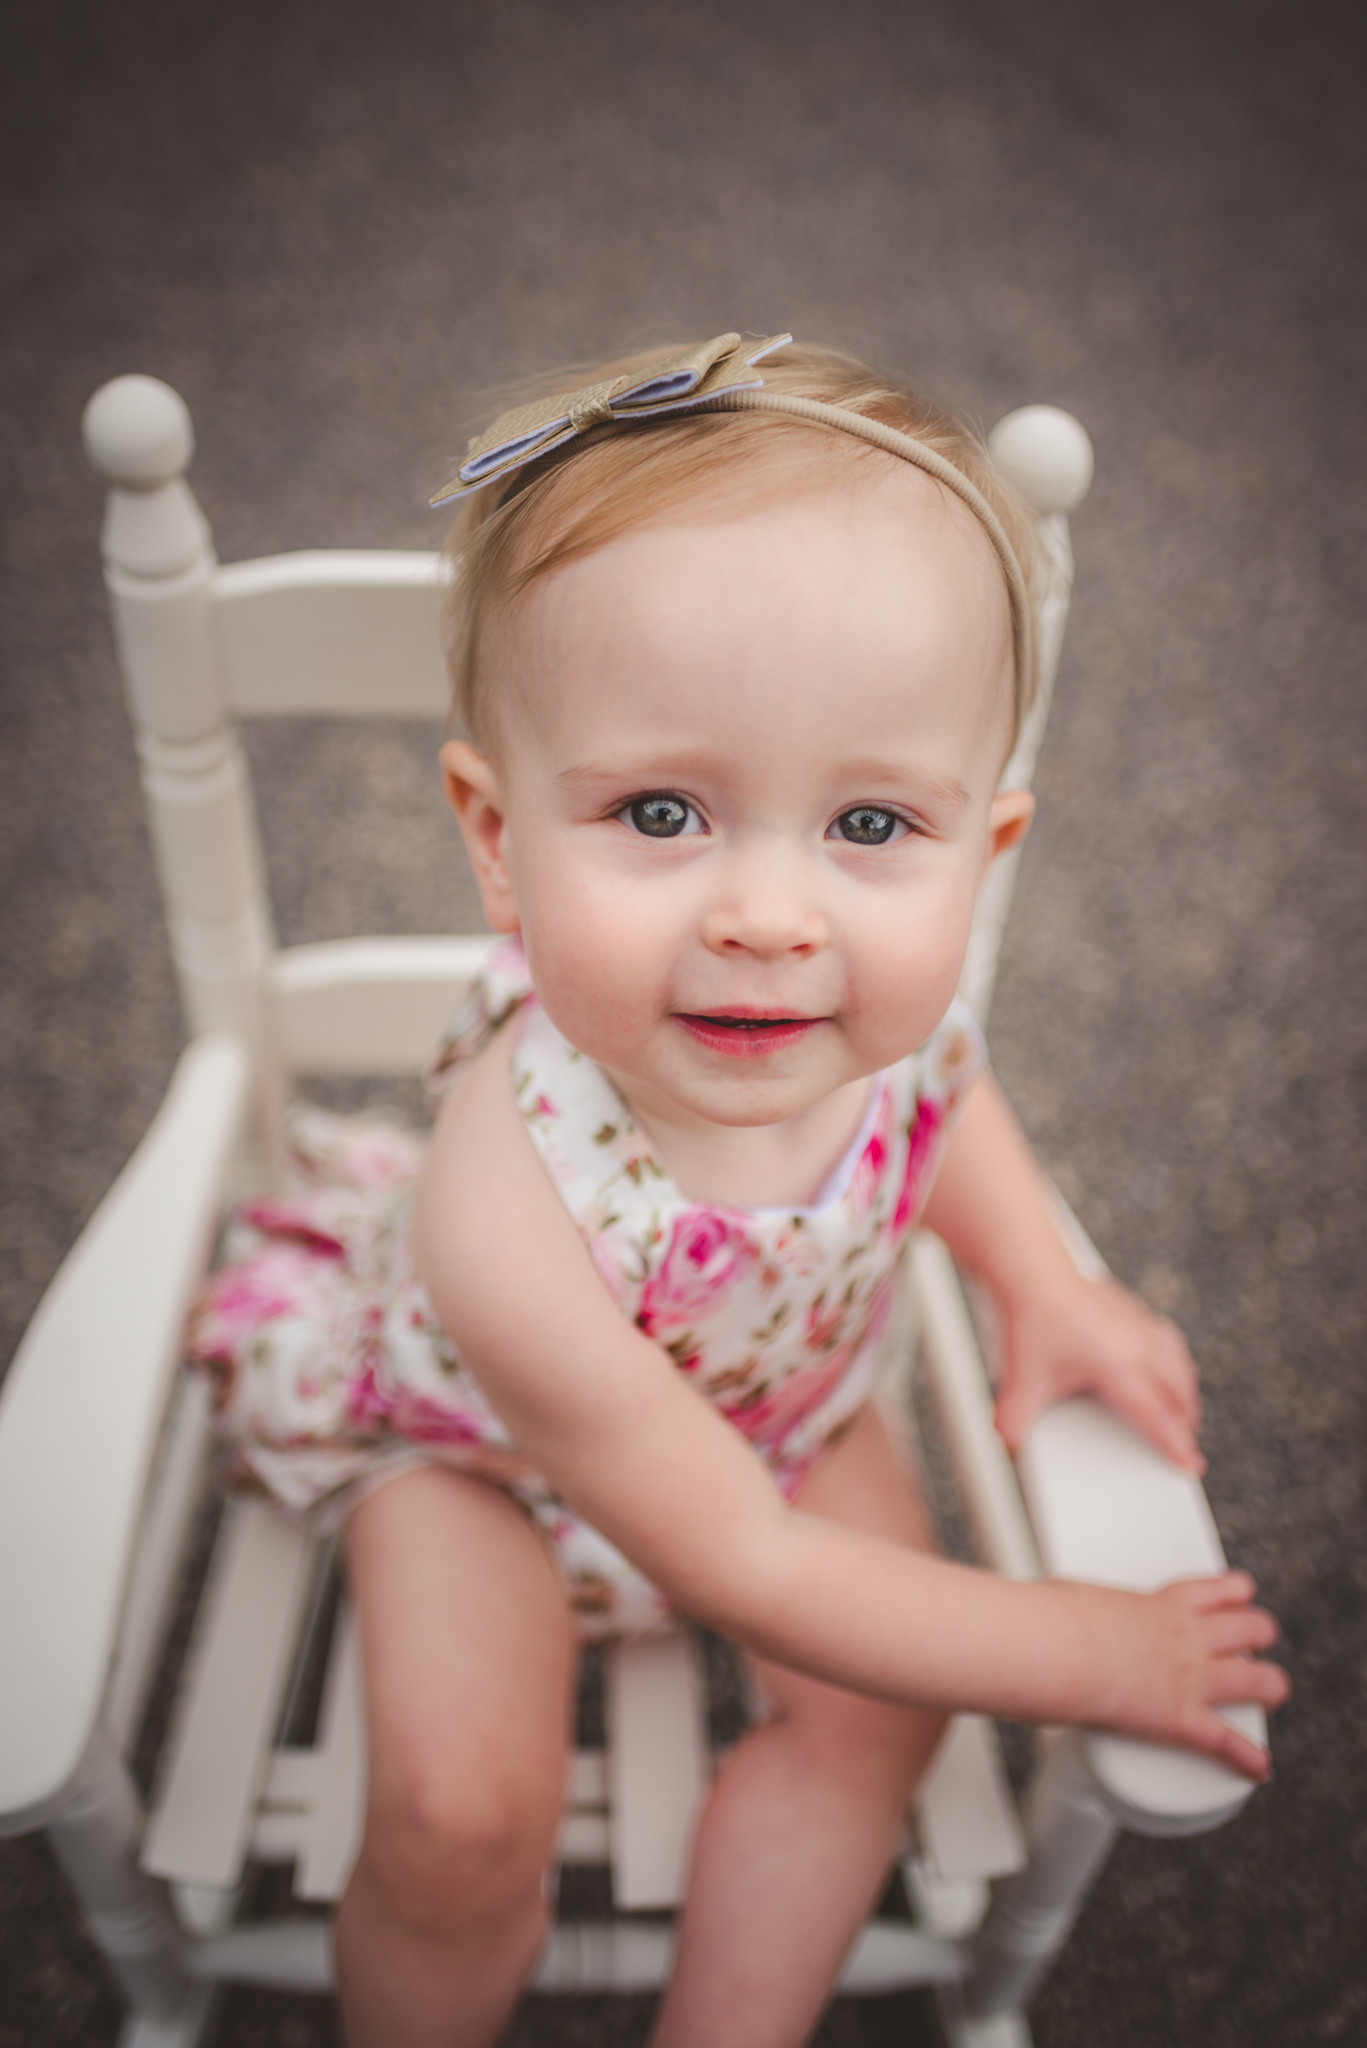 This little one year old girl is sitting in an old rocking chair for her first birthday in Rolesville, North Carolina, image taken by Rose Trail Images.